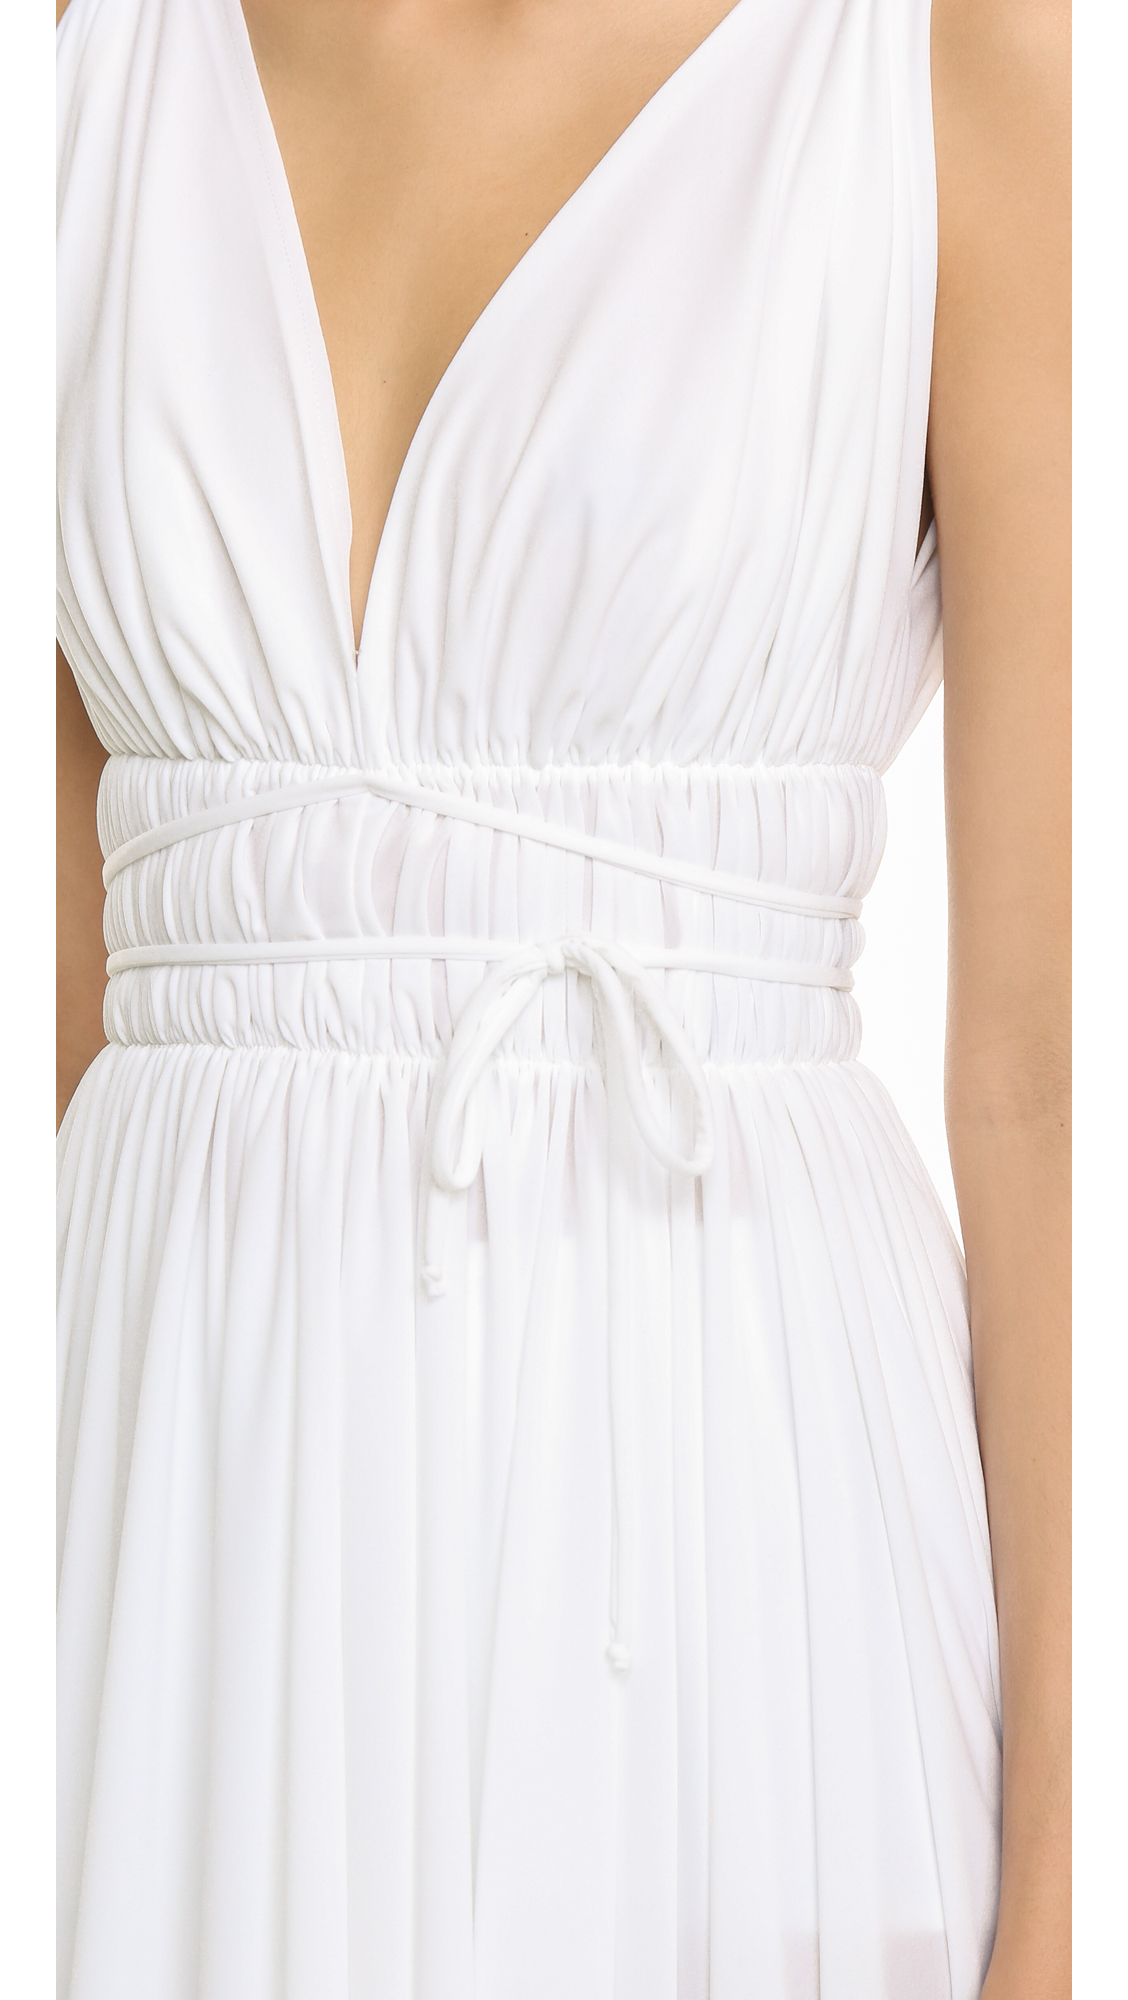 d776ea891cdcb Norma Kamali Goddess Asymmetrical Swim Dress - White in White - Lyst